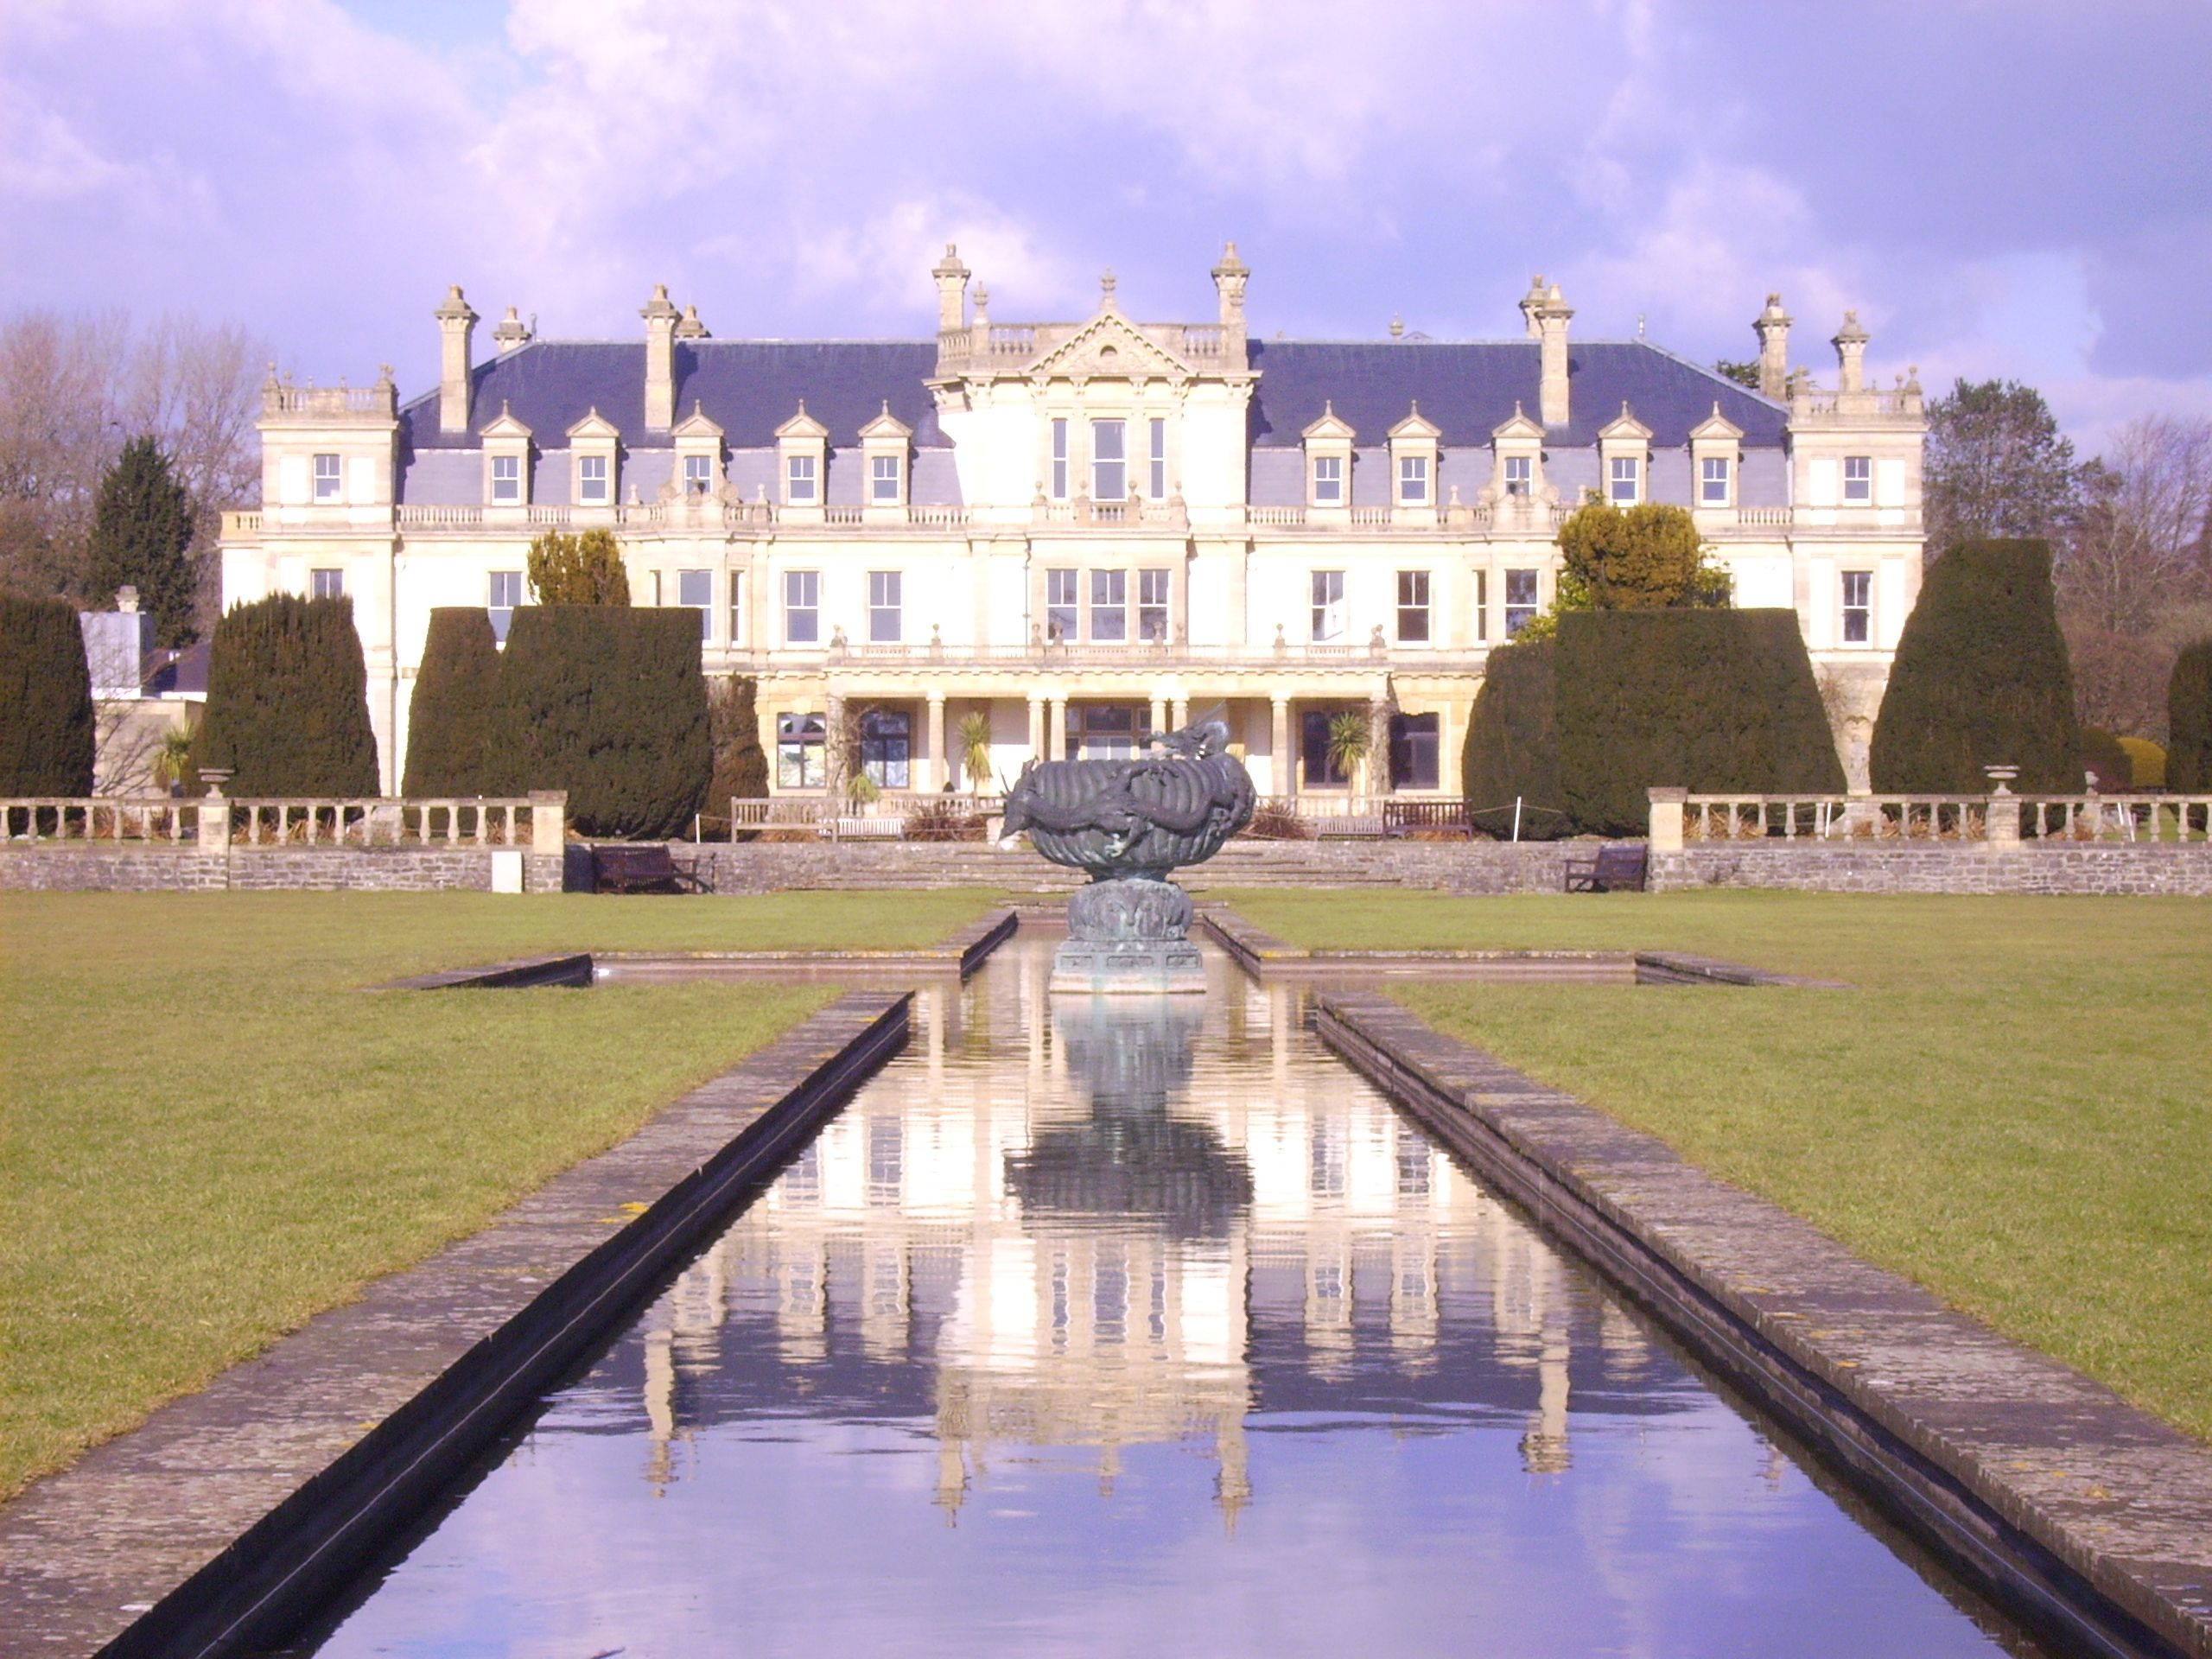 Cardiff dyffryn house gardens the most beautiful gardens in wales world traveler - Most beautiful manors romania ...